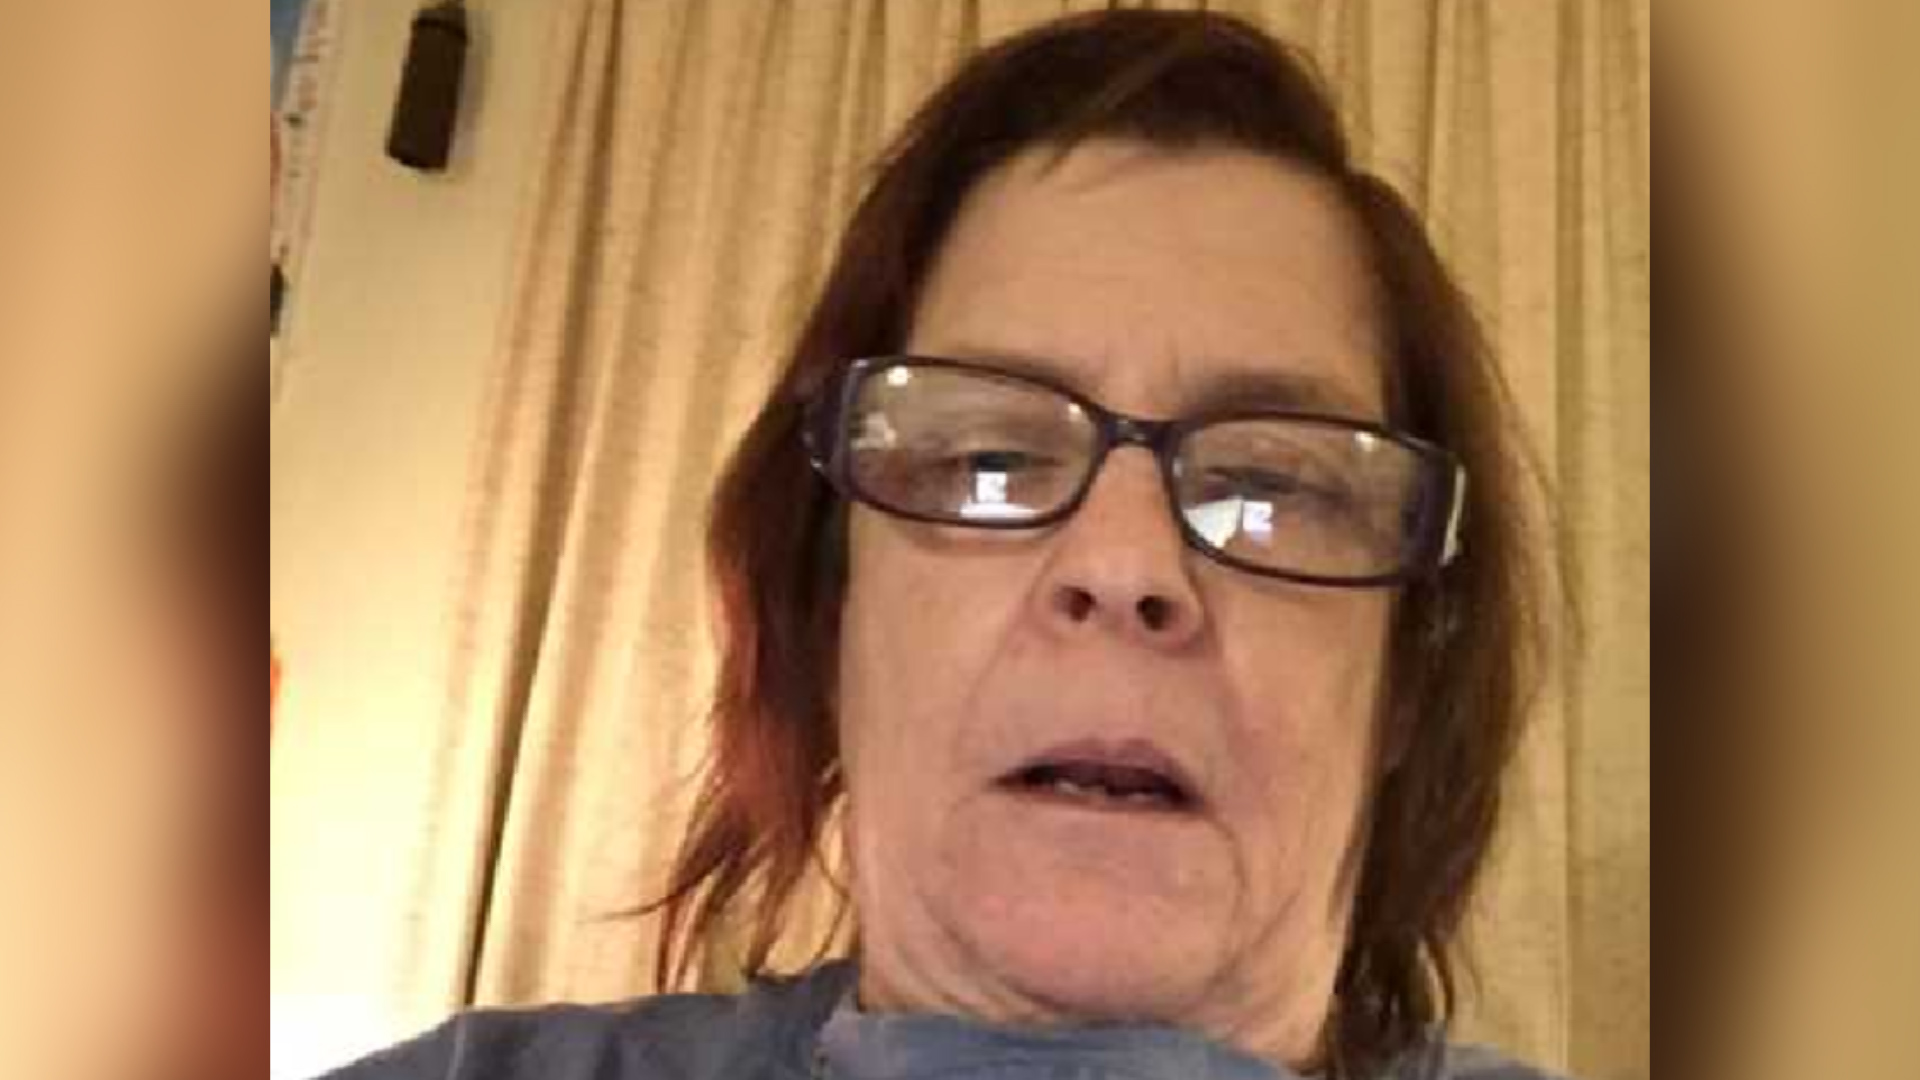 The Tioga County Sheriff's Office is attempting to locate a missing vulnerable adult, Sandra Ledford.